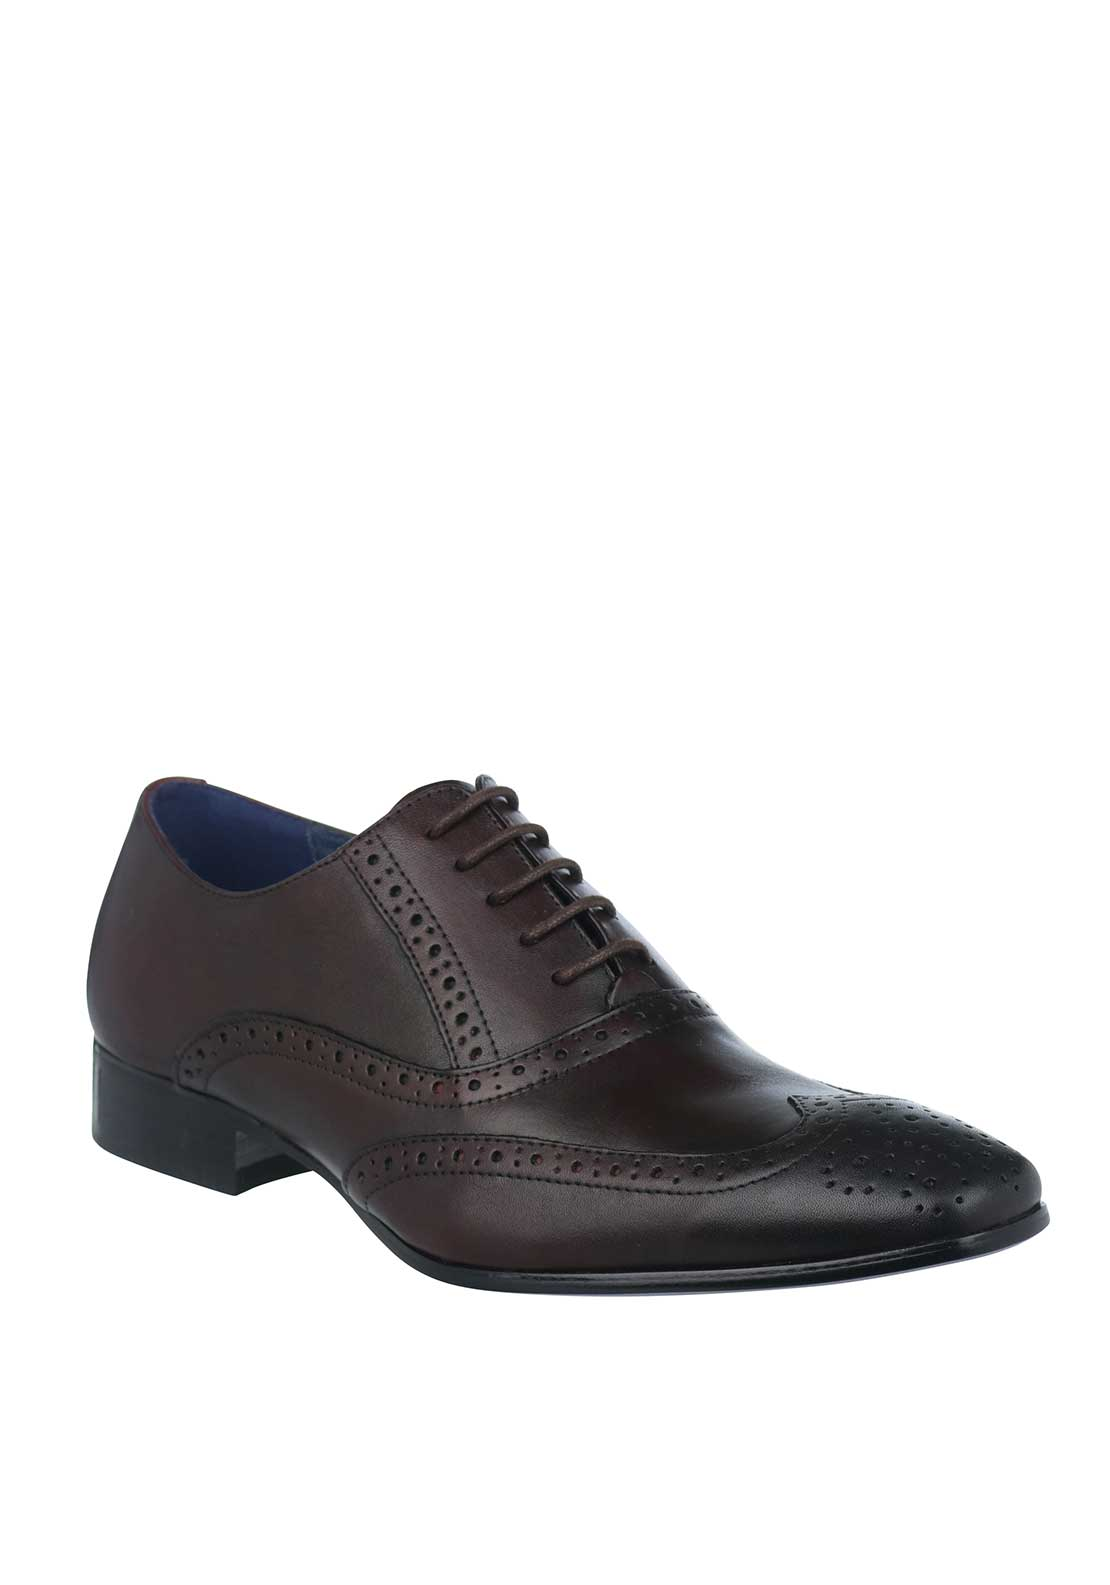 Remus Uomo Mens Franco Smart Leather Brogue, Burgundy